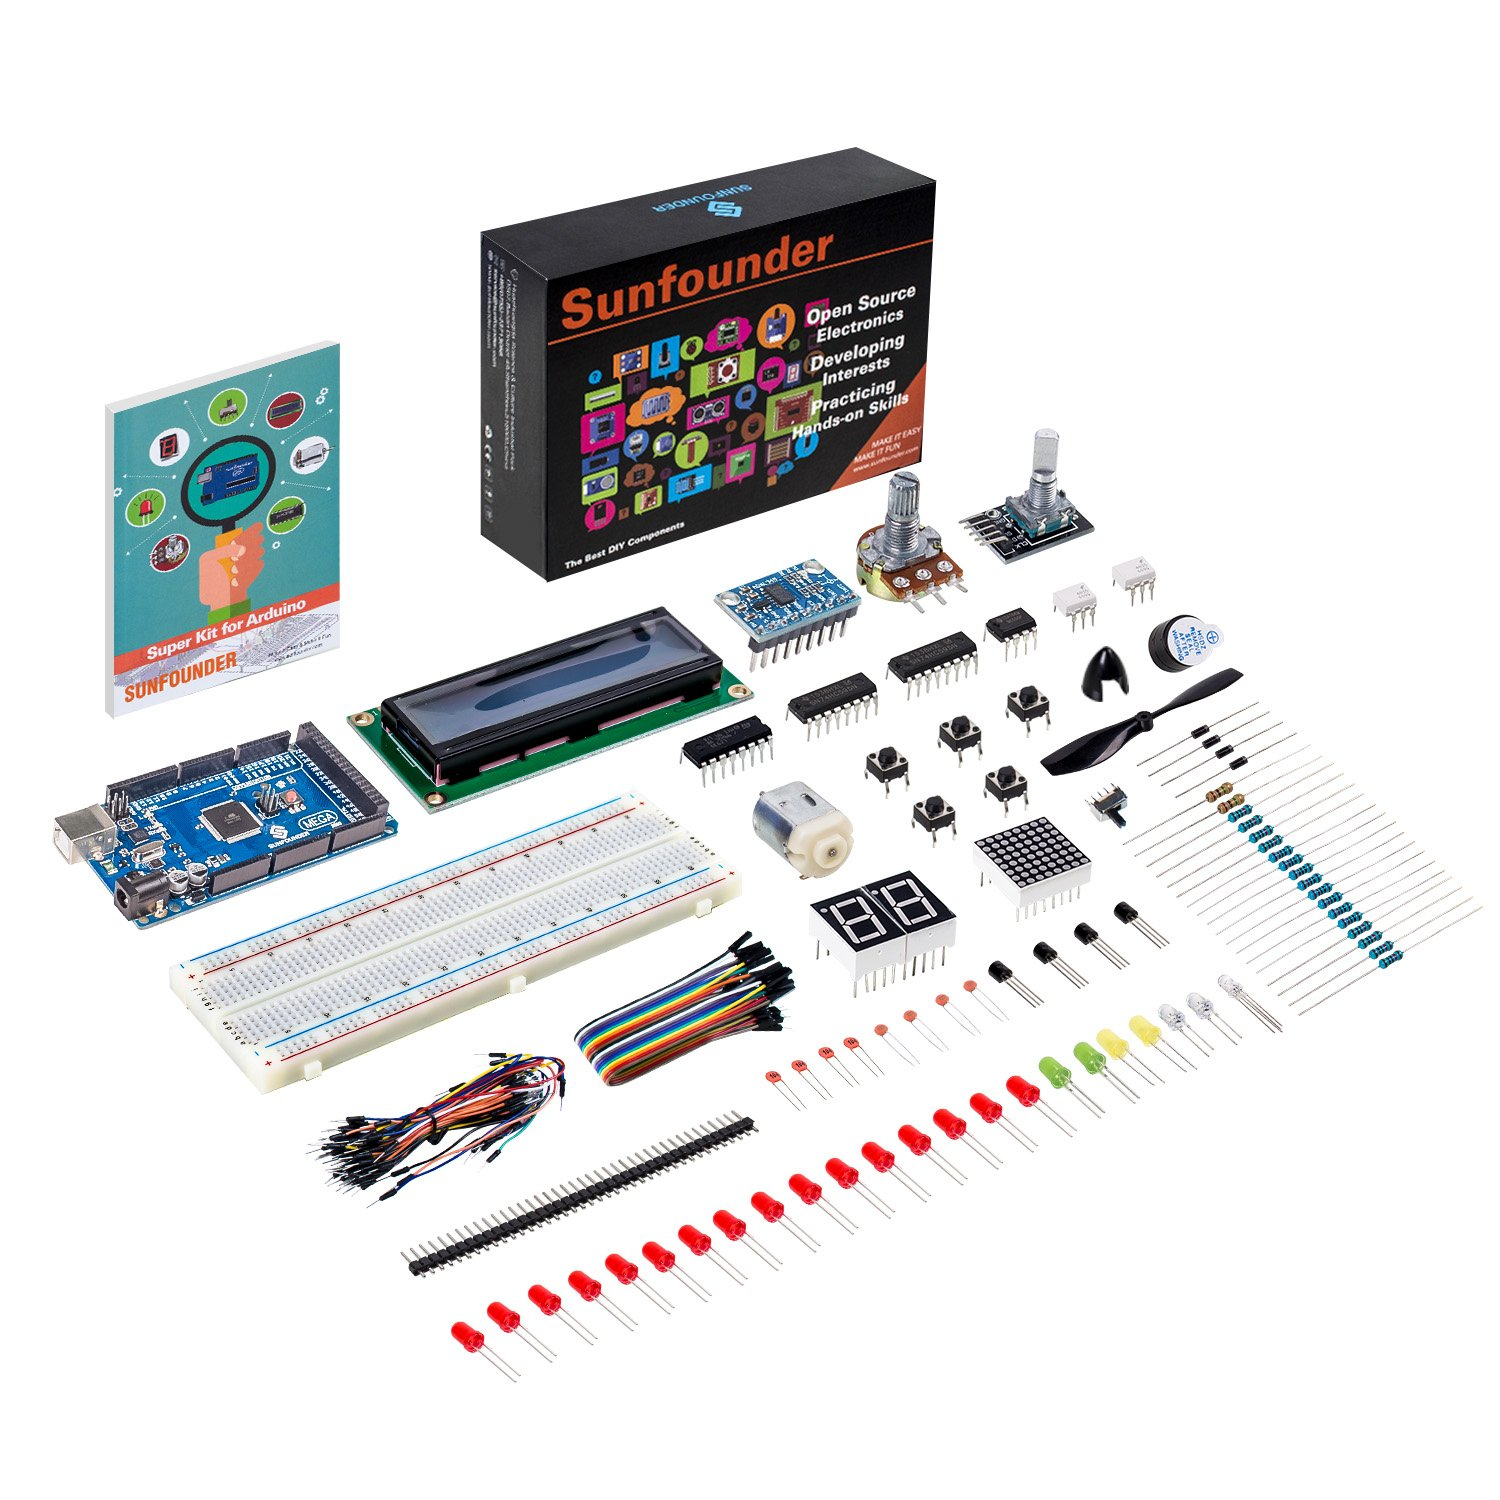 Sunfounder Mega 2560 R3 Project Super Starter Kit For Arduino Uno Pin Diagram Find A Guide With Wiring Mega2560 Mega328 Nano Including 73 Page Instructions Book Computers